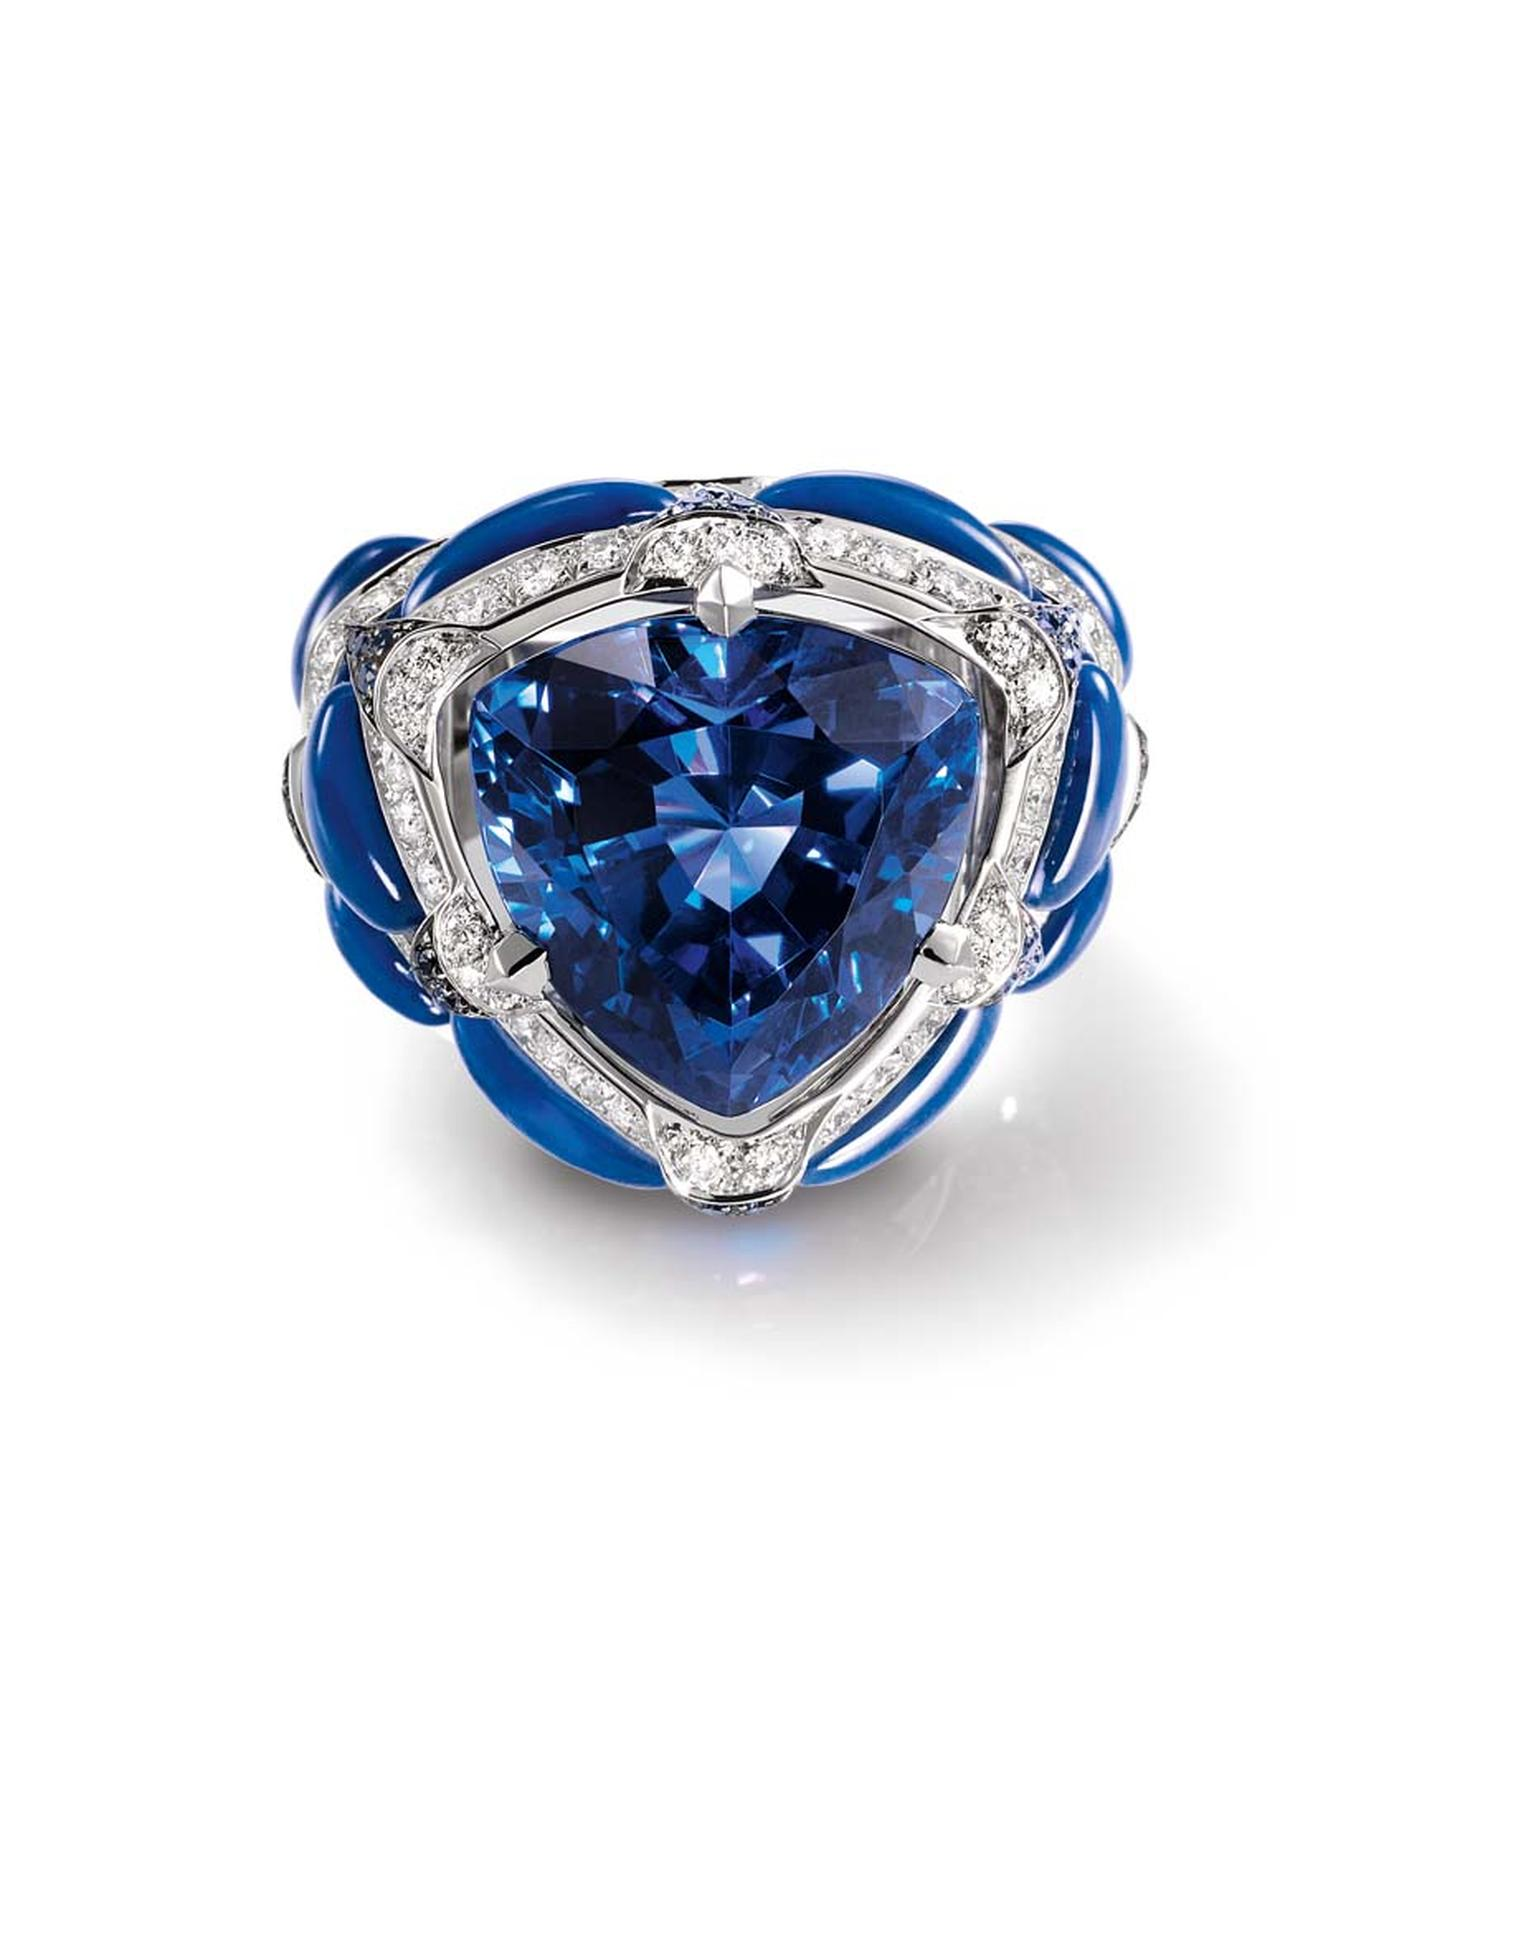 Chaumet Lumières d'Eau collection ring featuring diamonds, tanzanite and sculpted lapis lazuli.